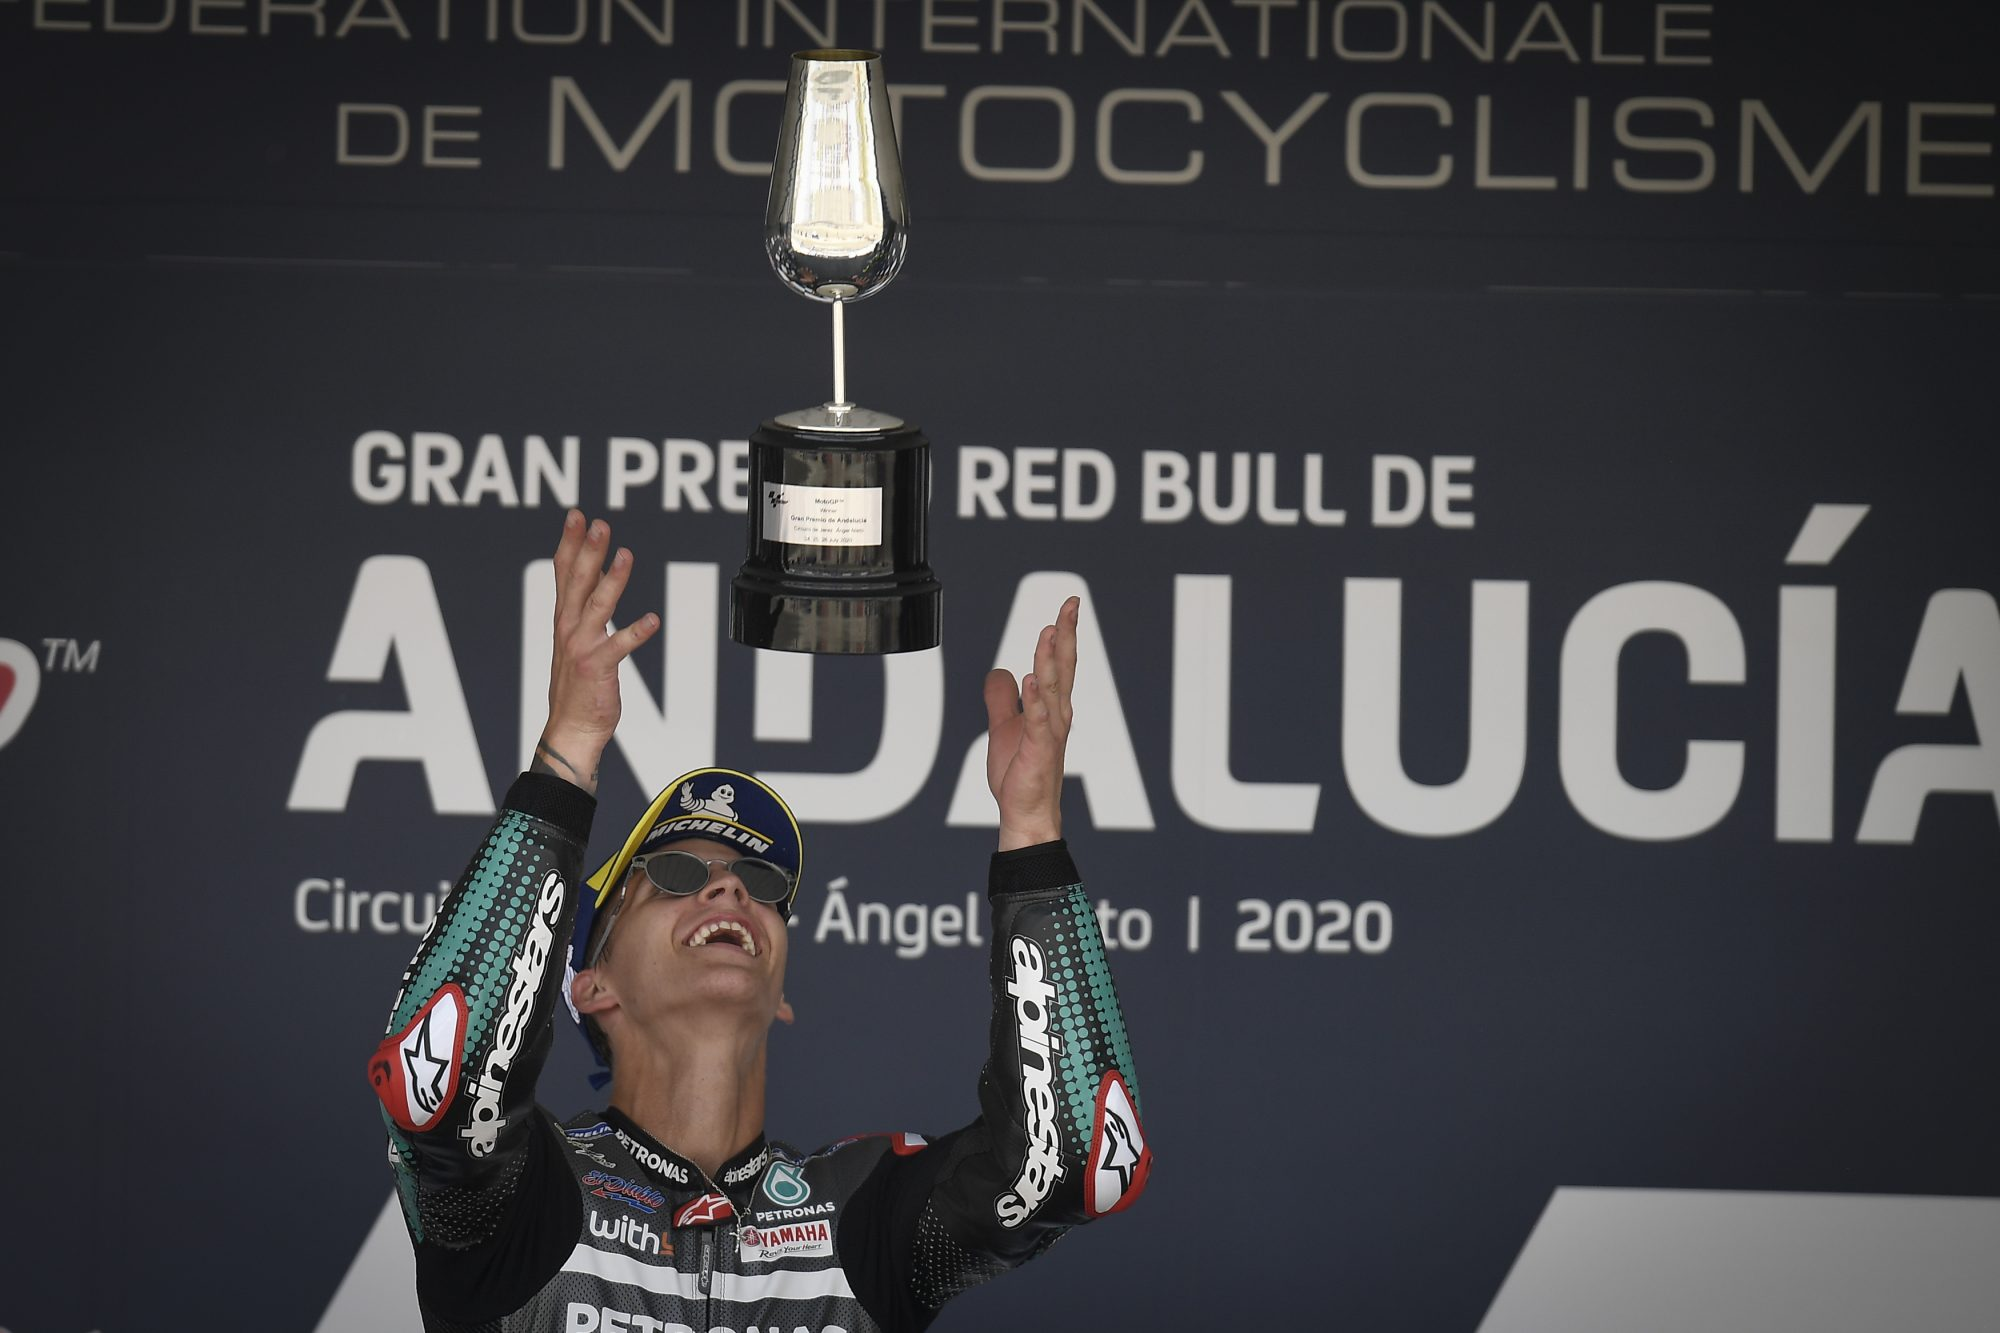 Undefeated: Quartararo bolts to victory ahead of Viñales and Rossi